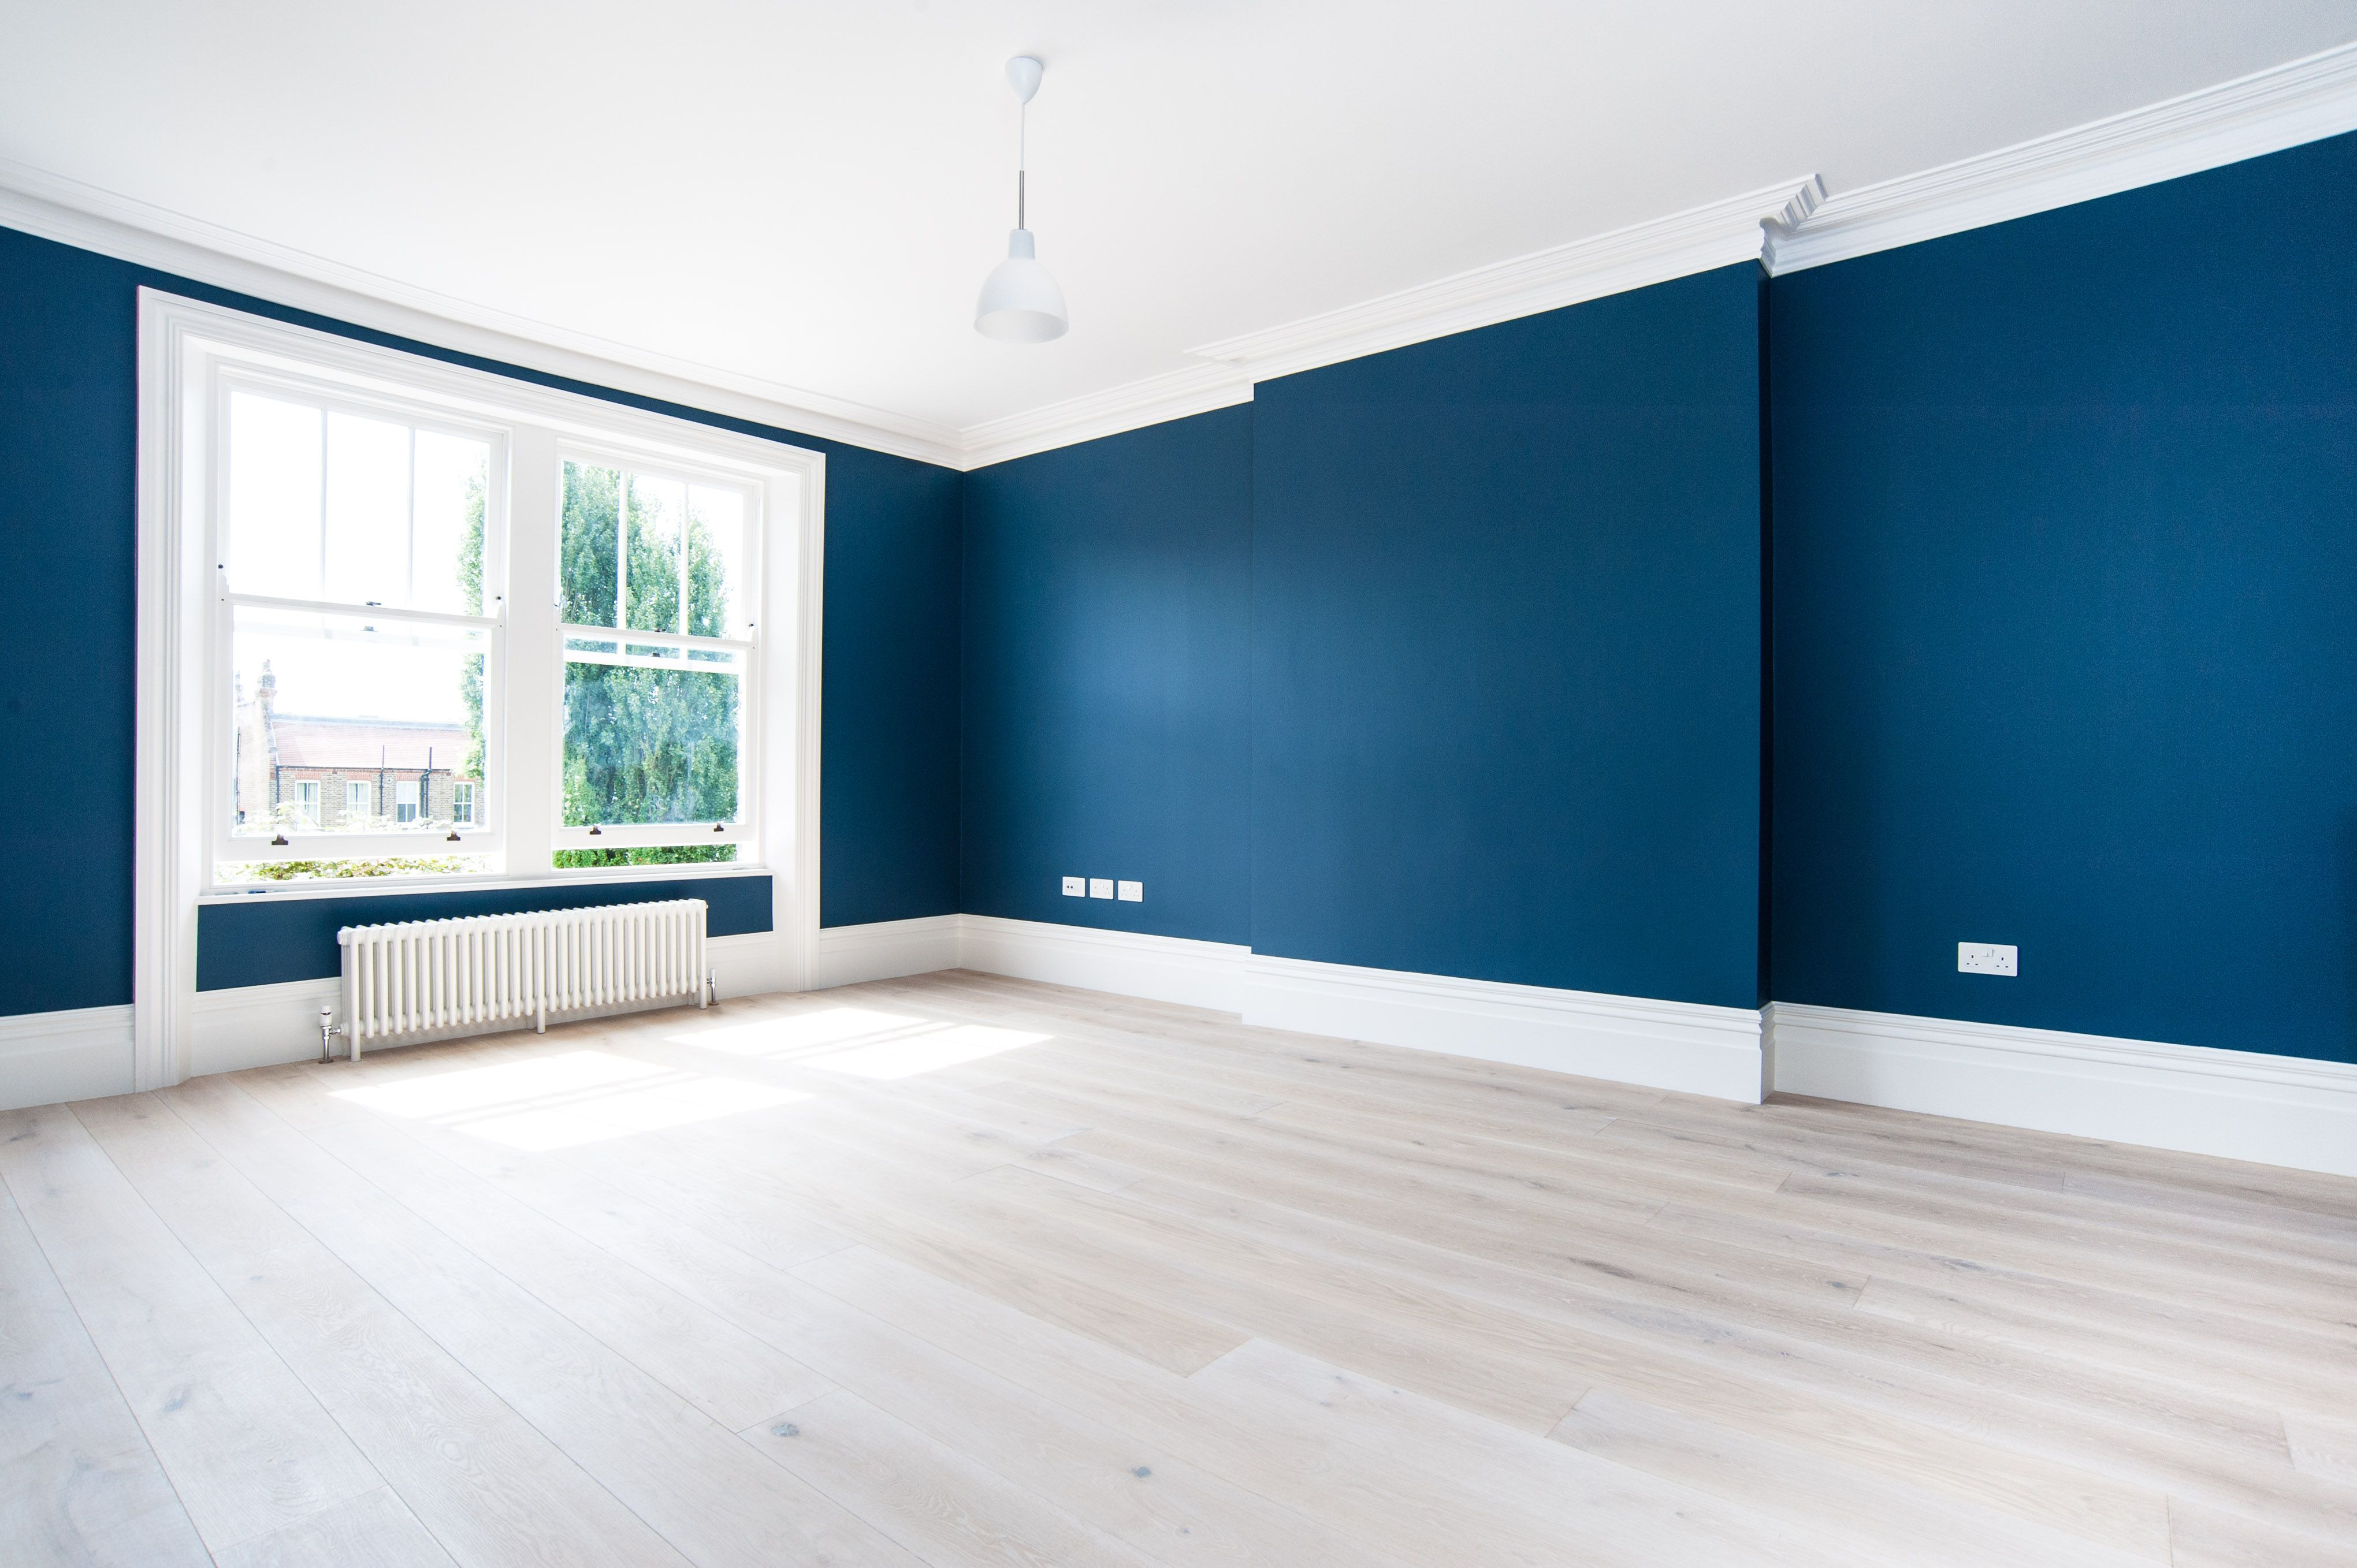 Paint Color Ideas That Make the Room Look Much Bigger | Ocean, Big ...